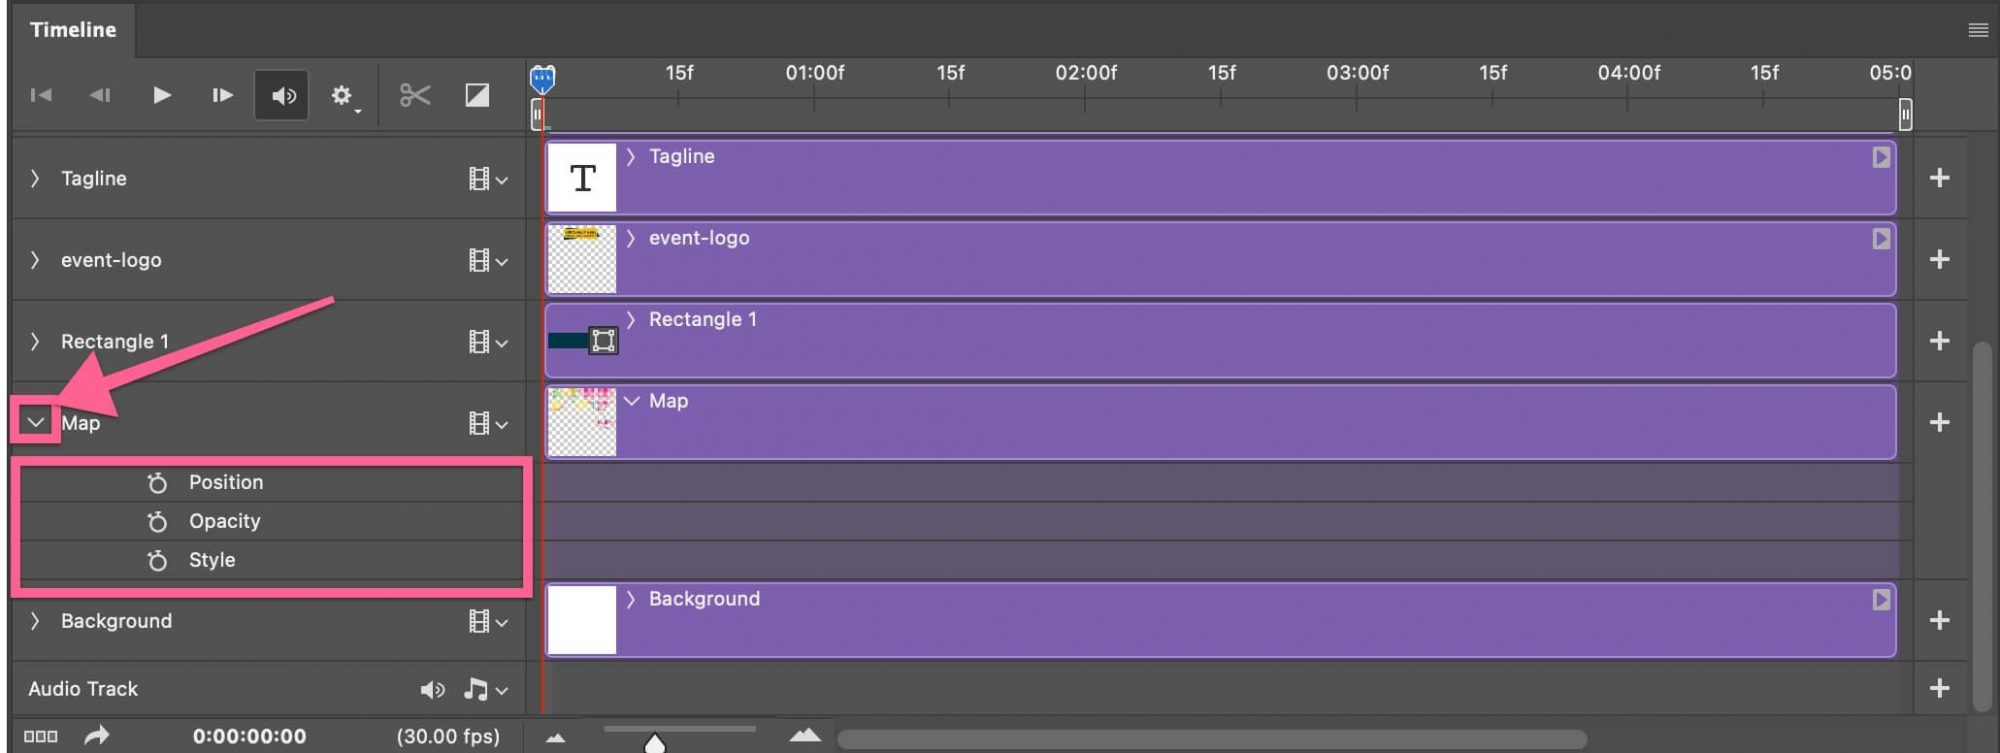 Keyframe position opacity style in timeline Photoshop